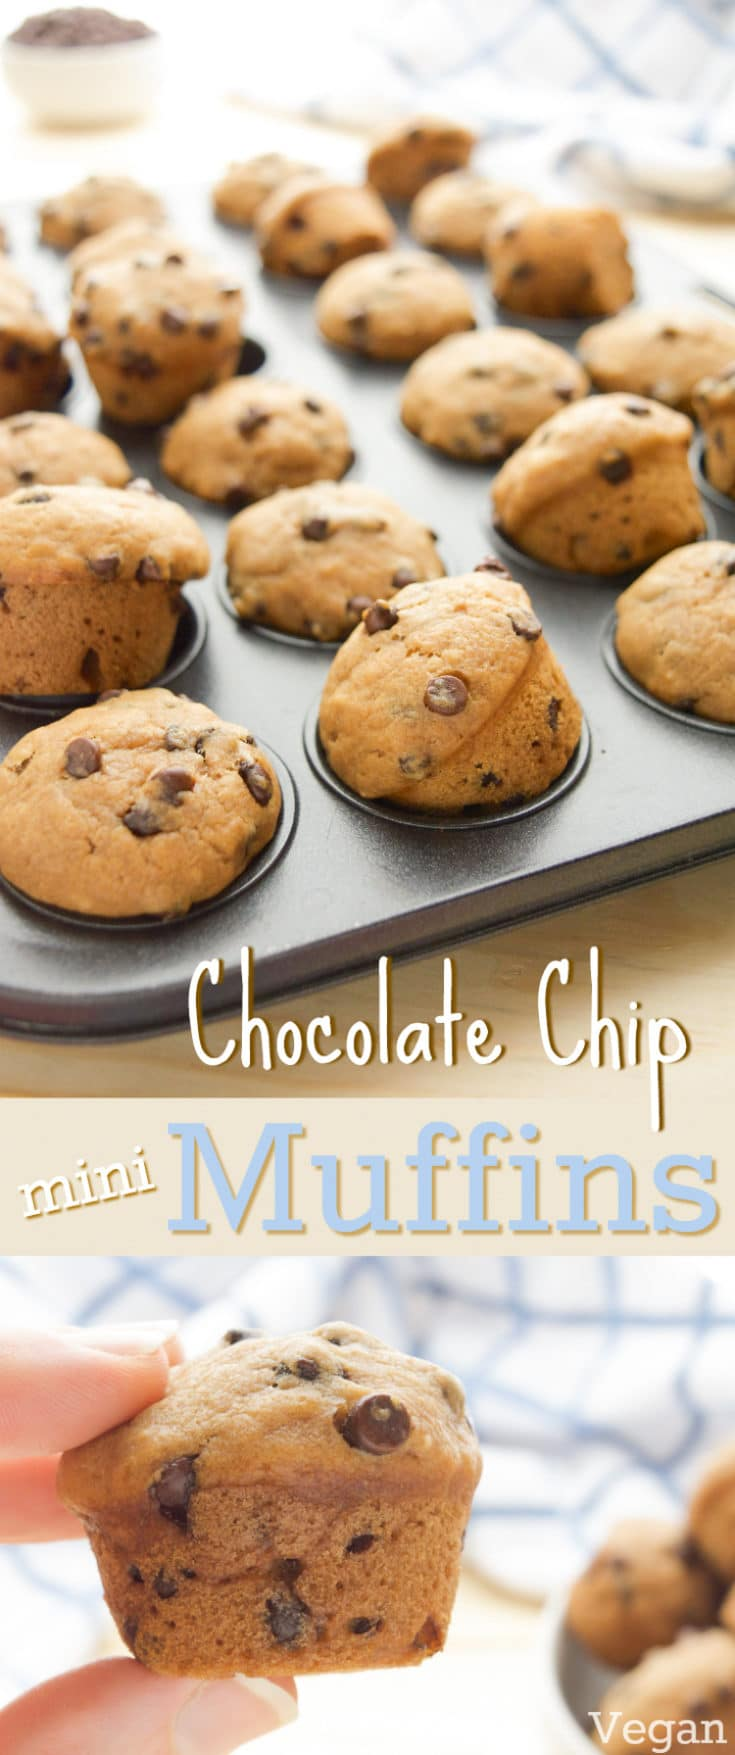 Ready in 20 minutes, these mini Vegan Chocolate Chip Muffins will be a new go-to, pop-able treat!  Bursting with chocolate chip cookie flavor, these soft mini muffins are sure to be a hit! They're great for lunch boxes or as a fun after school snack.  #veganmuffins #chocolatemuffins #veganrecipes #kidfriendlyrecipe #vegansnack